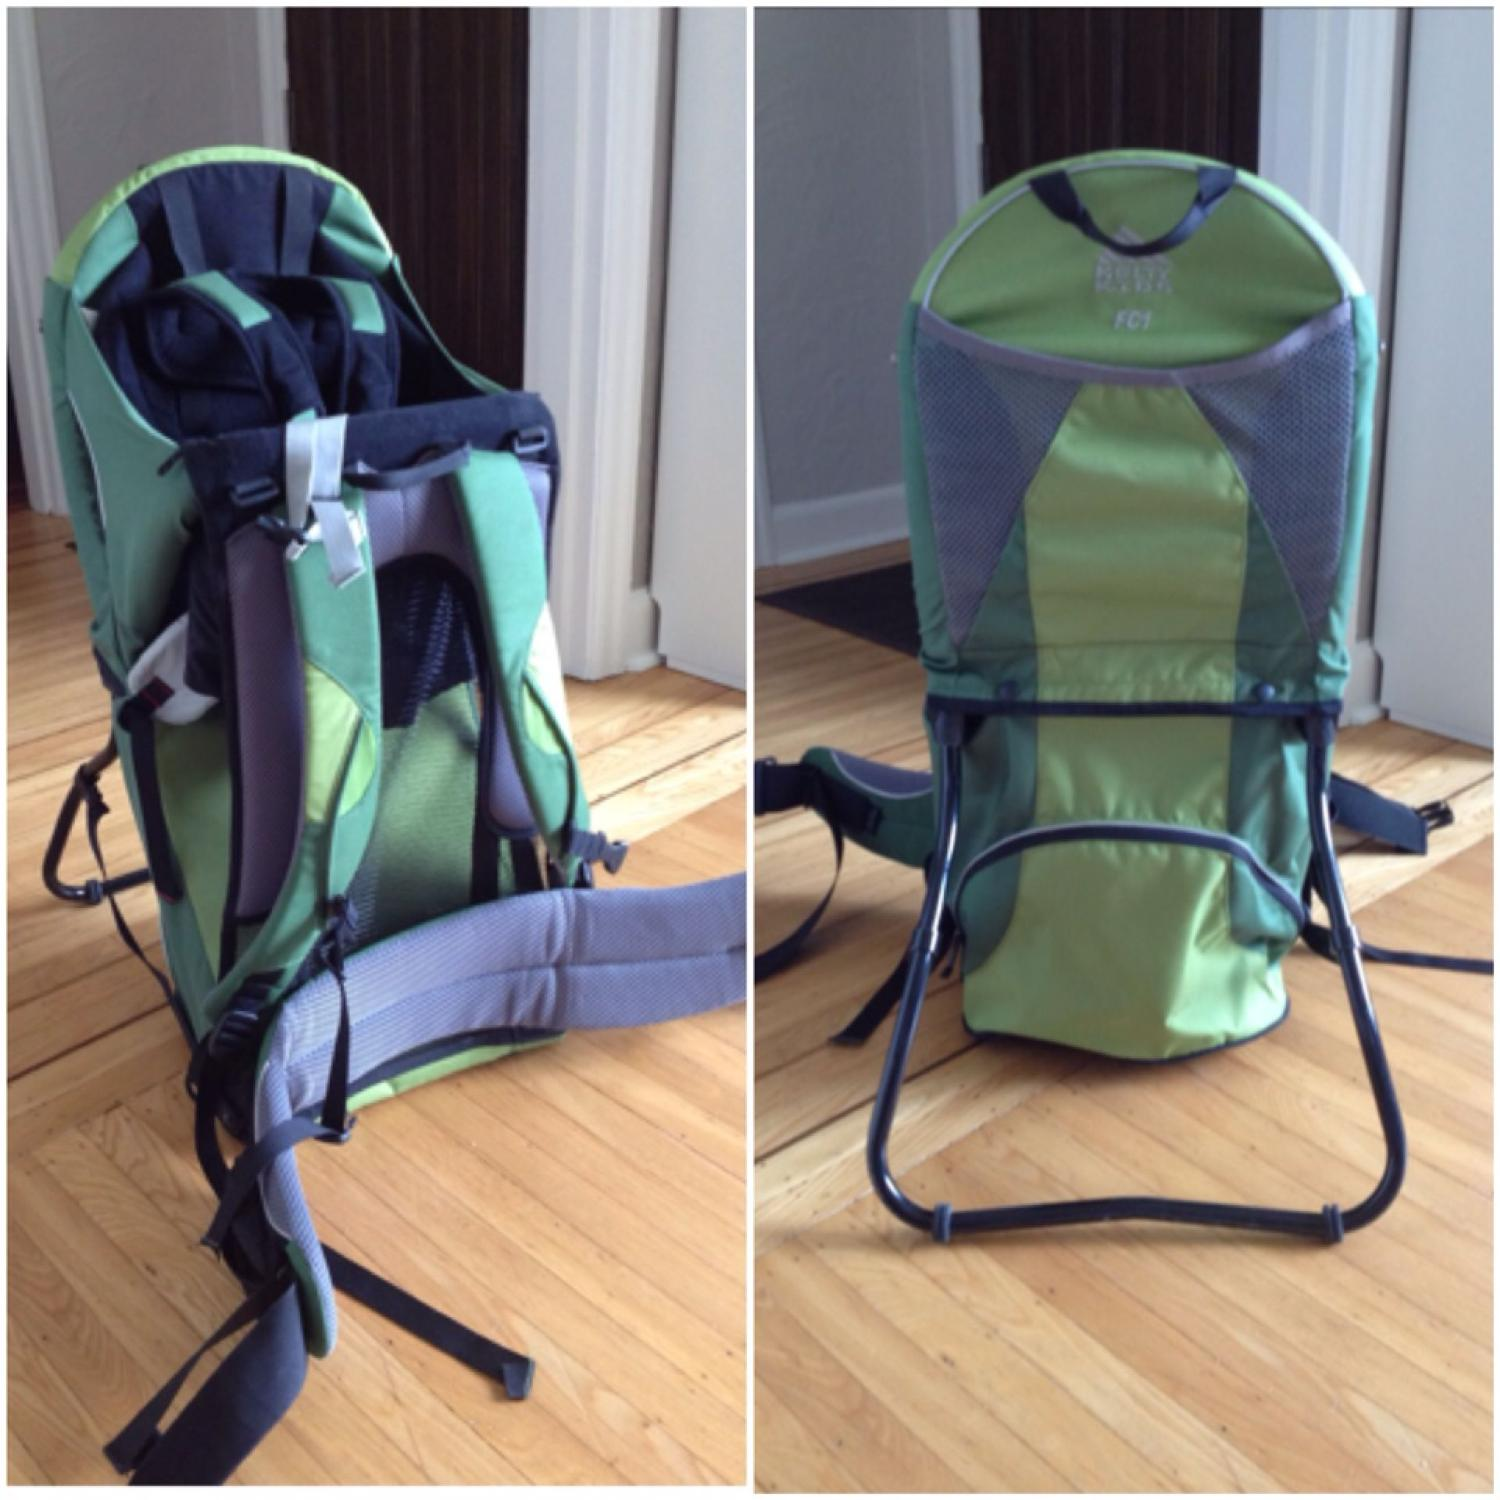 7080b58ce0b Find more Euc - Kelty Kids Fc 2.0 Frame Child Carrier for sale at up ...